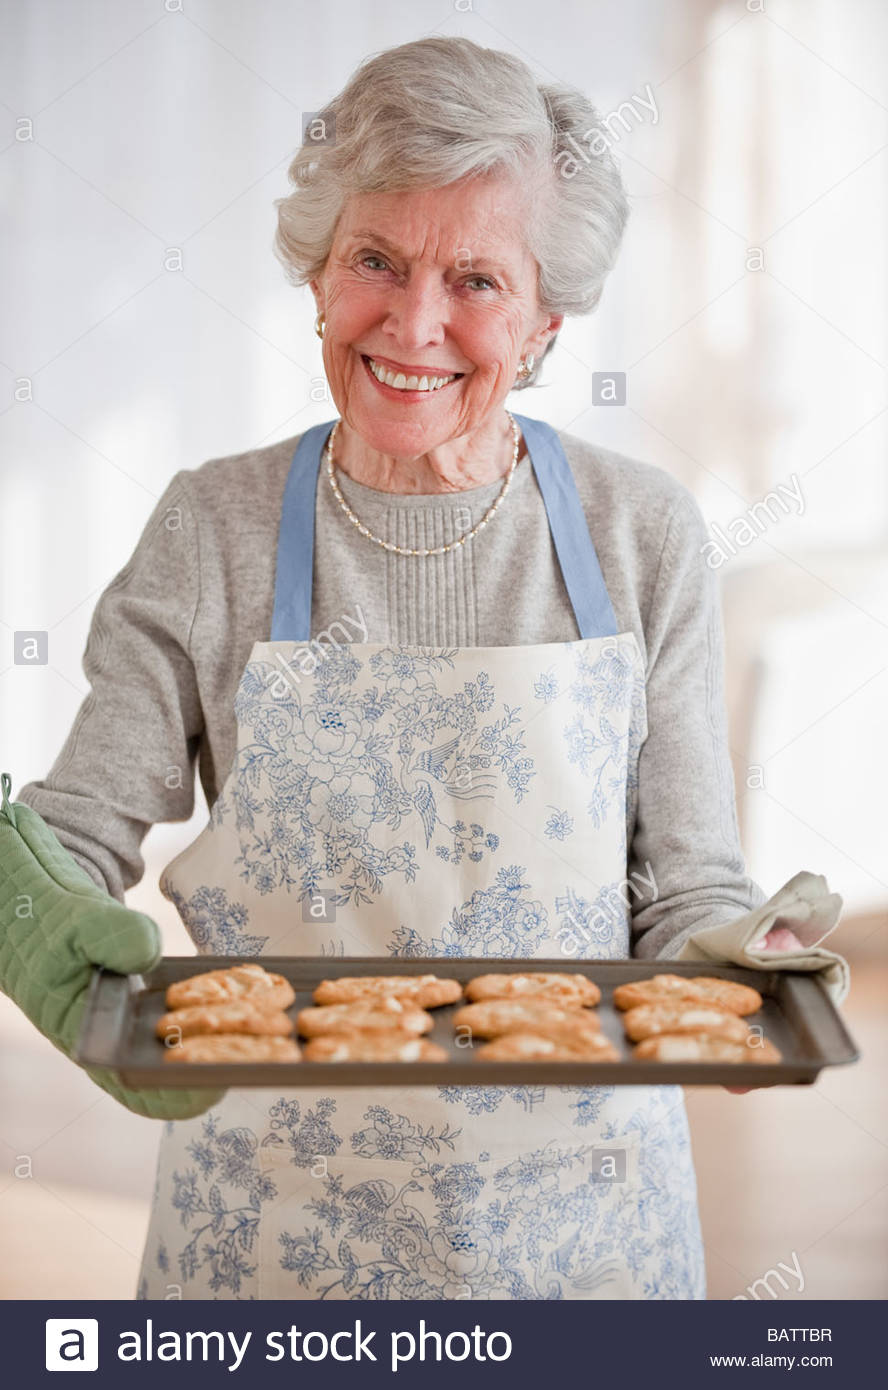 I baked some goods while writing